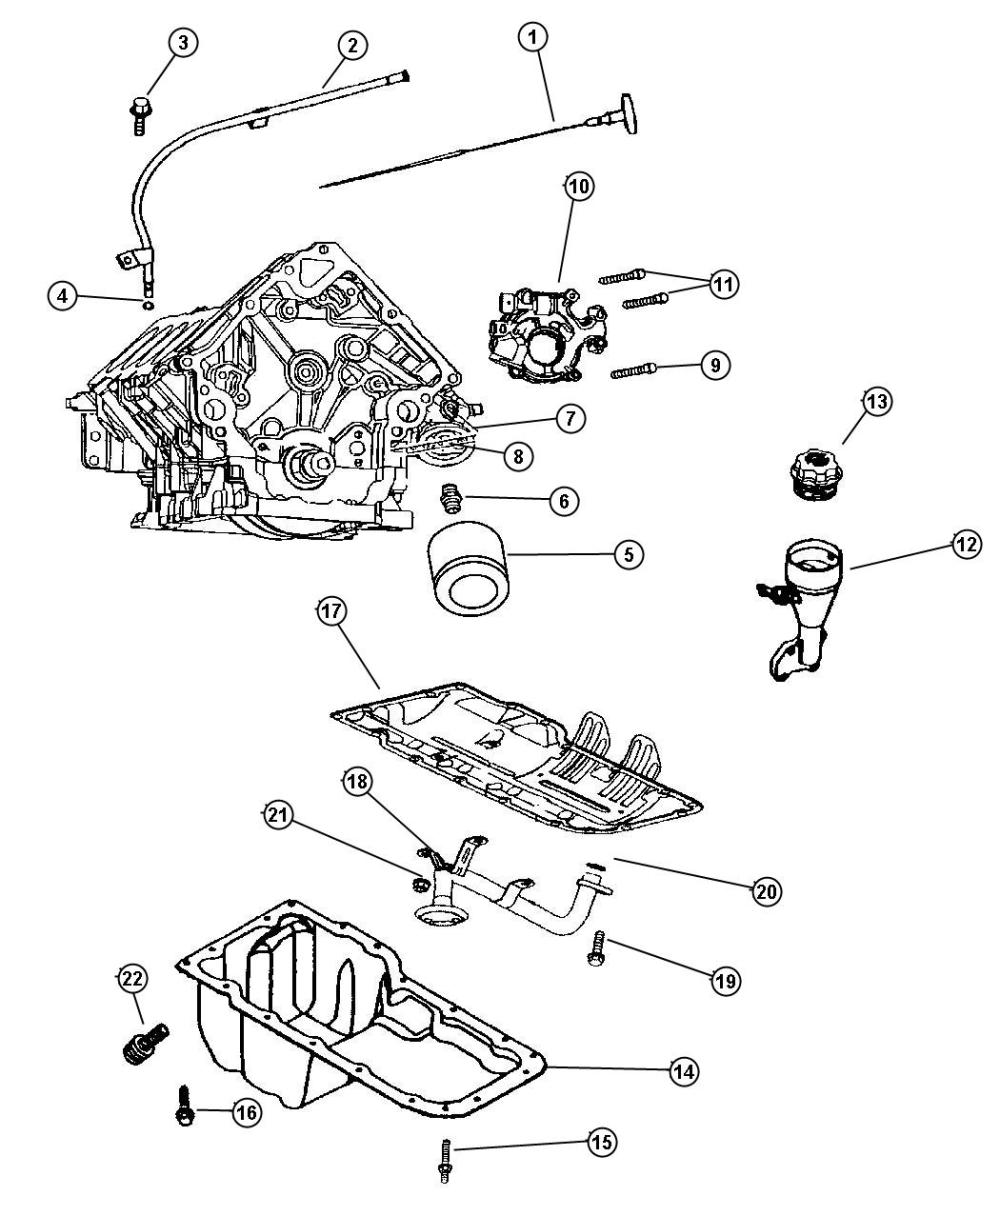 medium resolution of 2004 dodge 5 7 hemi serpentine belt diagram schematics wiring 2009 dodge ram 2500 serpentine belt